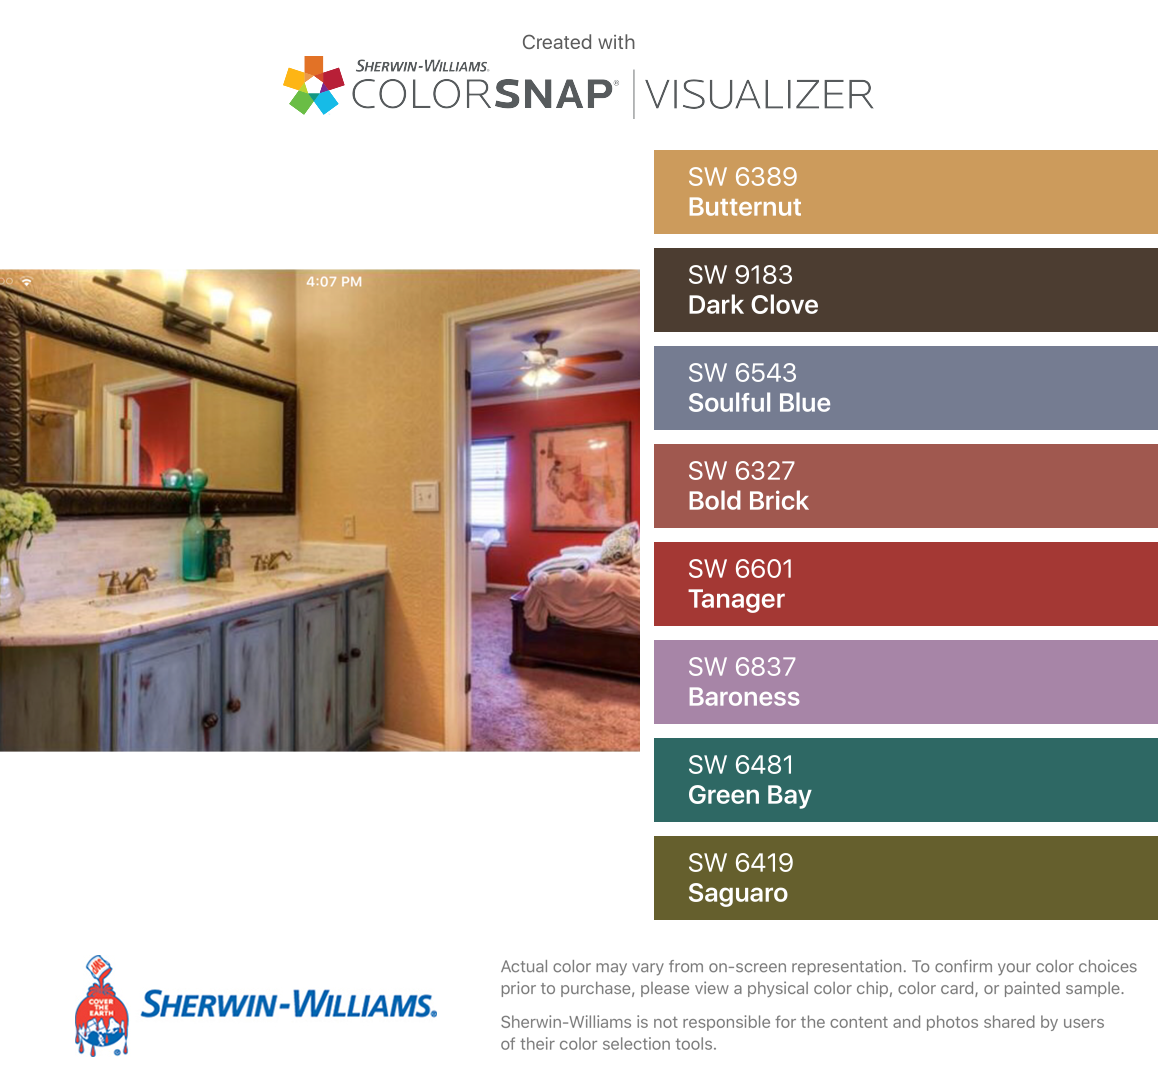 I found these colors with ColorSnap® Visualizer for iPhone by Sherwin-Williams: Butternut (SW 6389), Dark Clove (SW 9183), Soulful Blue (SW 6543), Bold Brick (SW 6327), Tanager (SW 6601), Baroness (SW 6837), Green Bay (SW 6481), Saguaro (SW 6419).